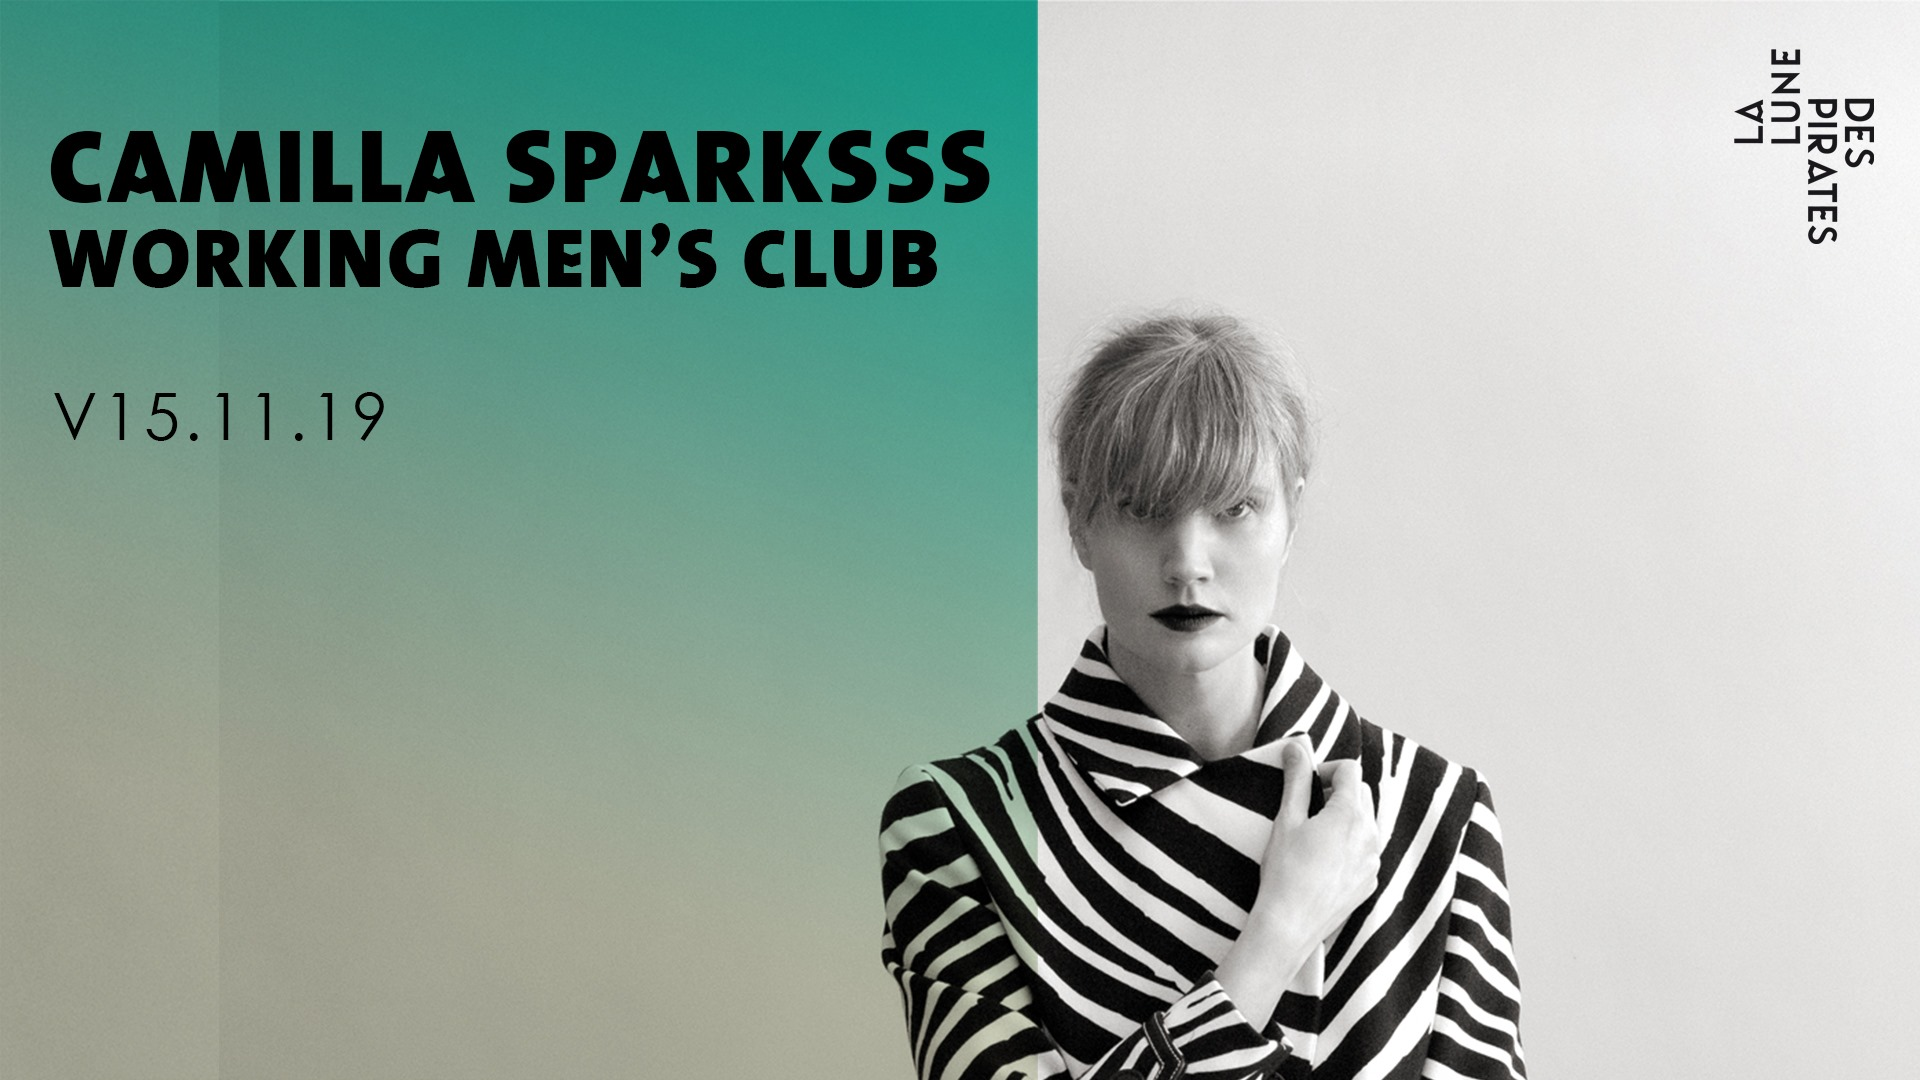 CAMILLA SPARKSSS + WORKING MEN'S CLUB / VENDREDI 15 NOVEMBRE 2019 / LA LUNE DES PIRATES